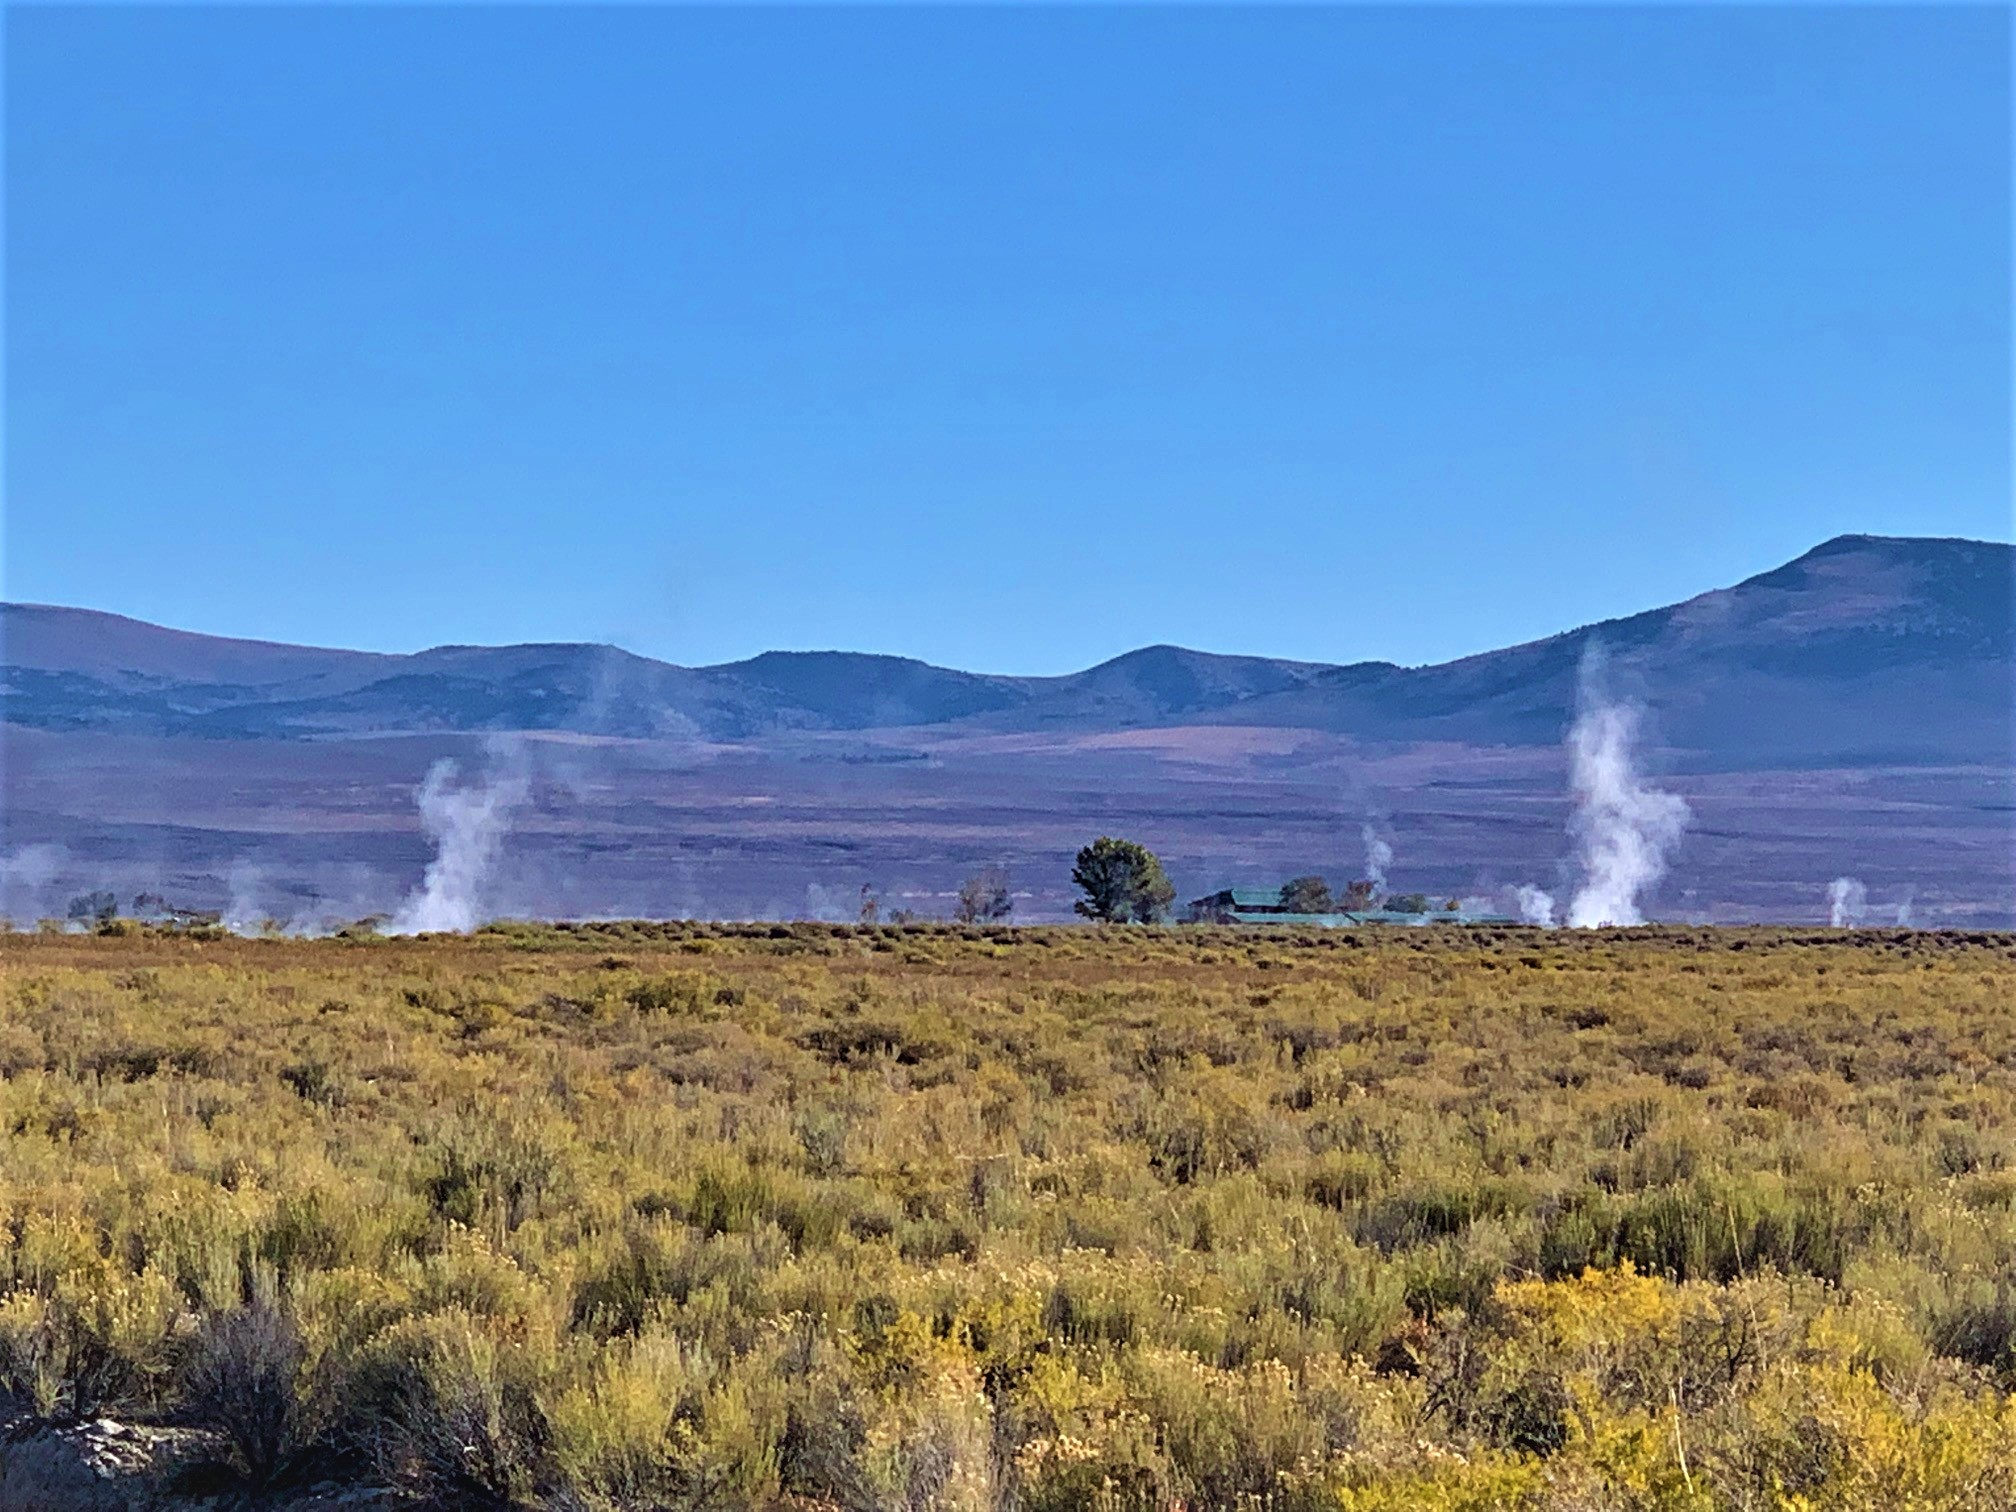 hot spring in distance